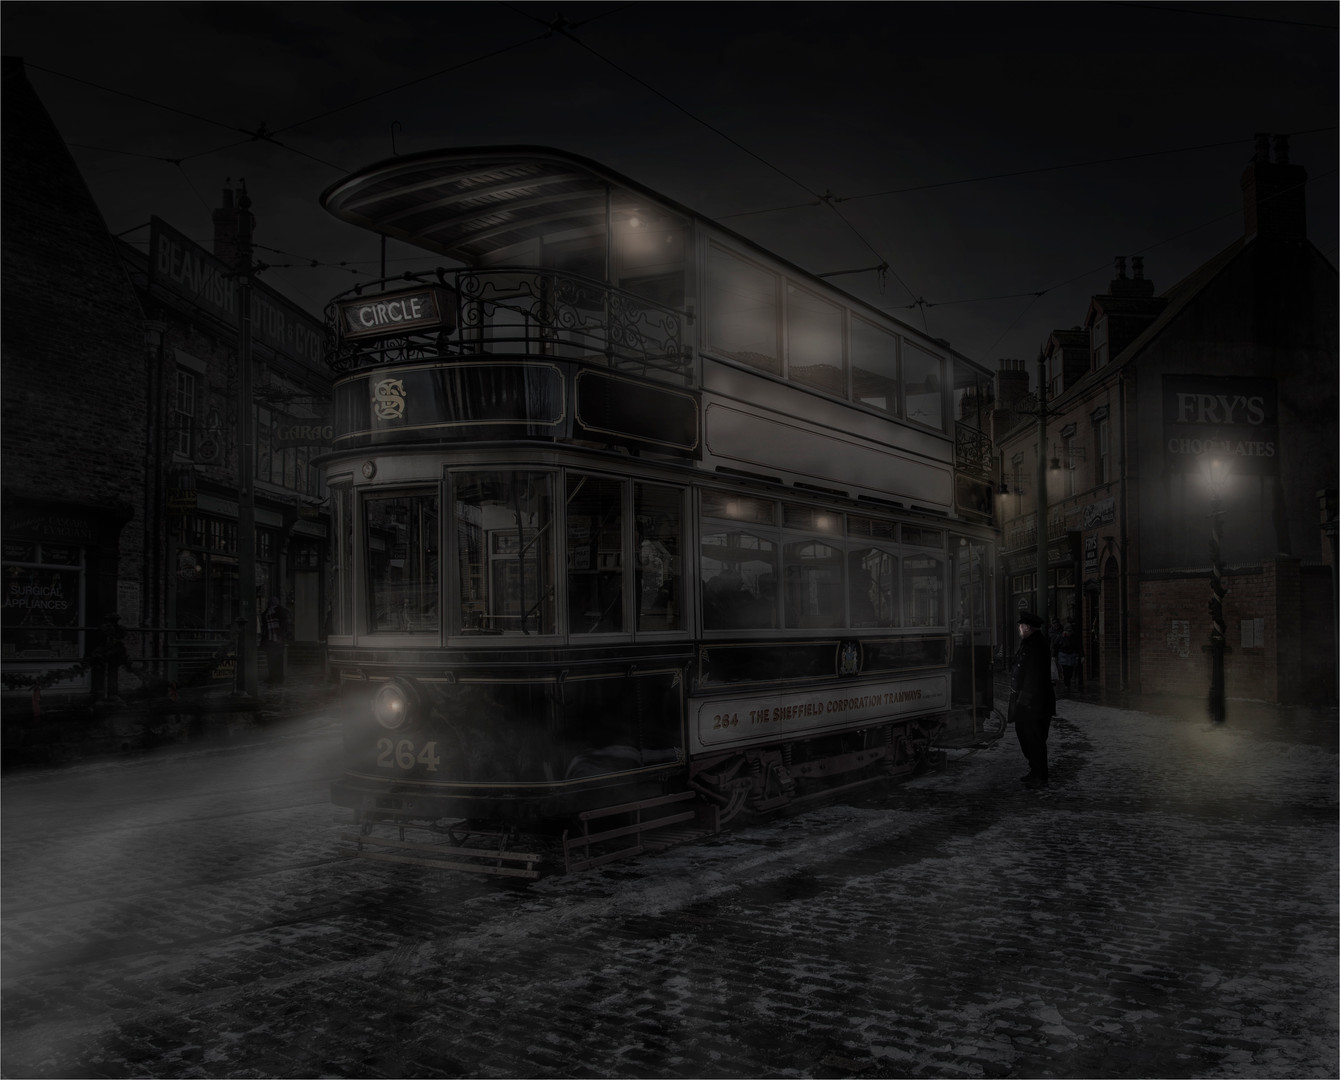 The Night Tram